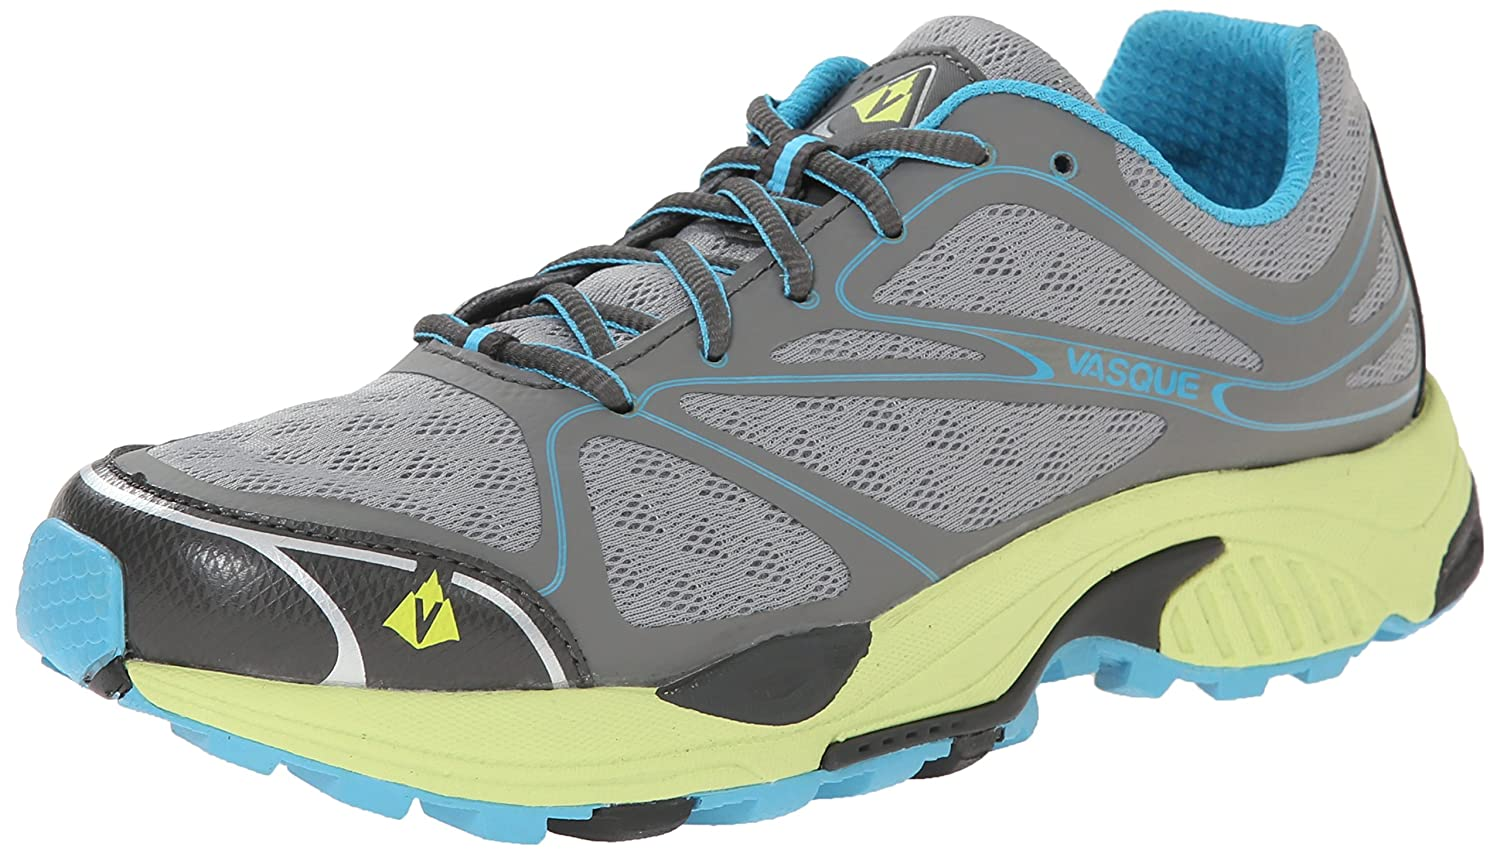 Vasque Women's Pendulum II Trailing Running Shoe B00KYT1M4K 8.5 B(M) US|Neutral Gray/Horizon Blue